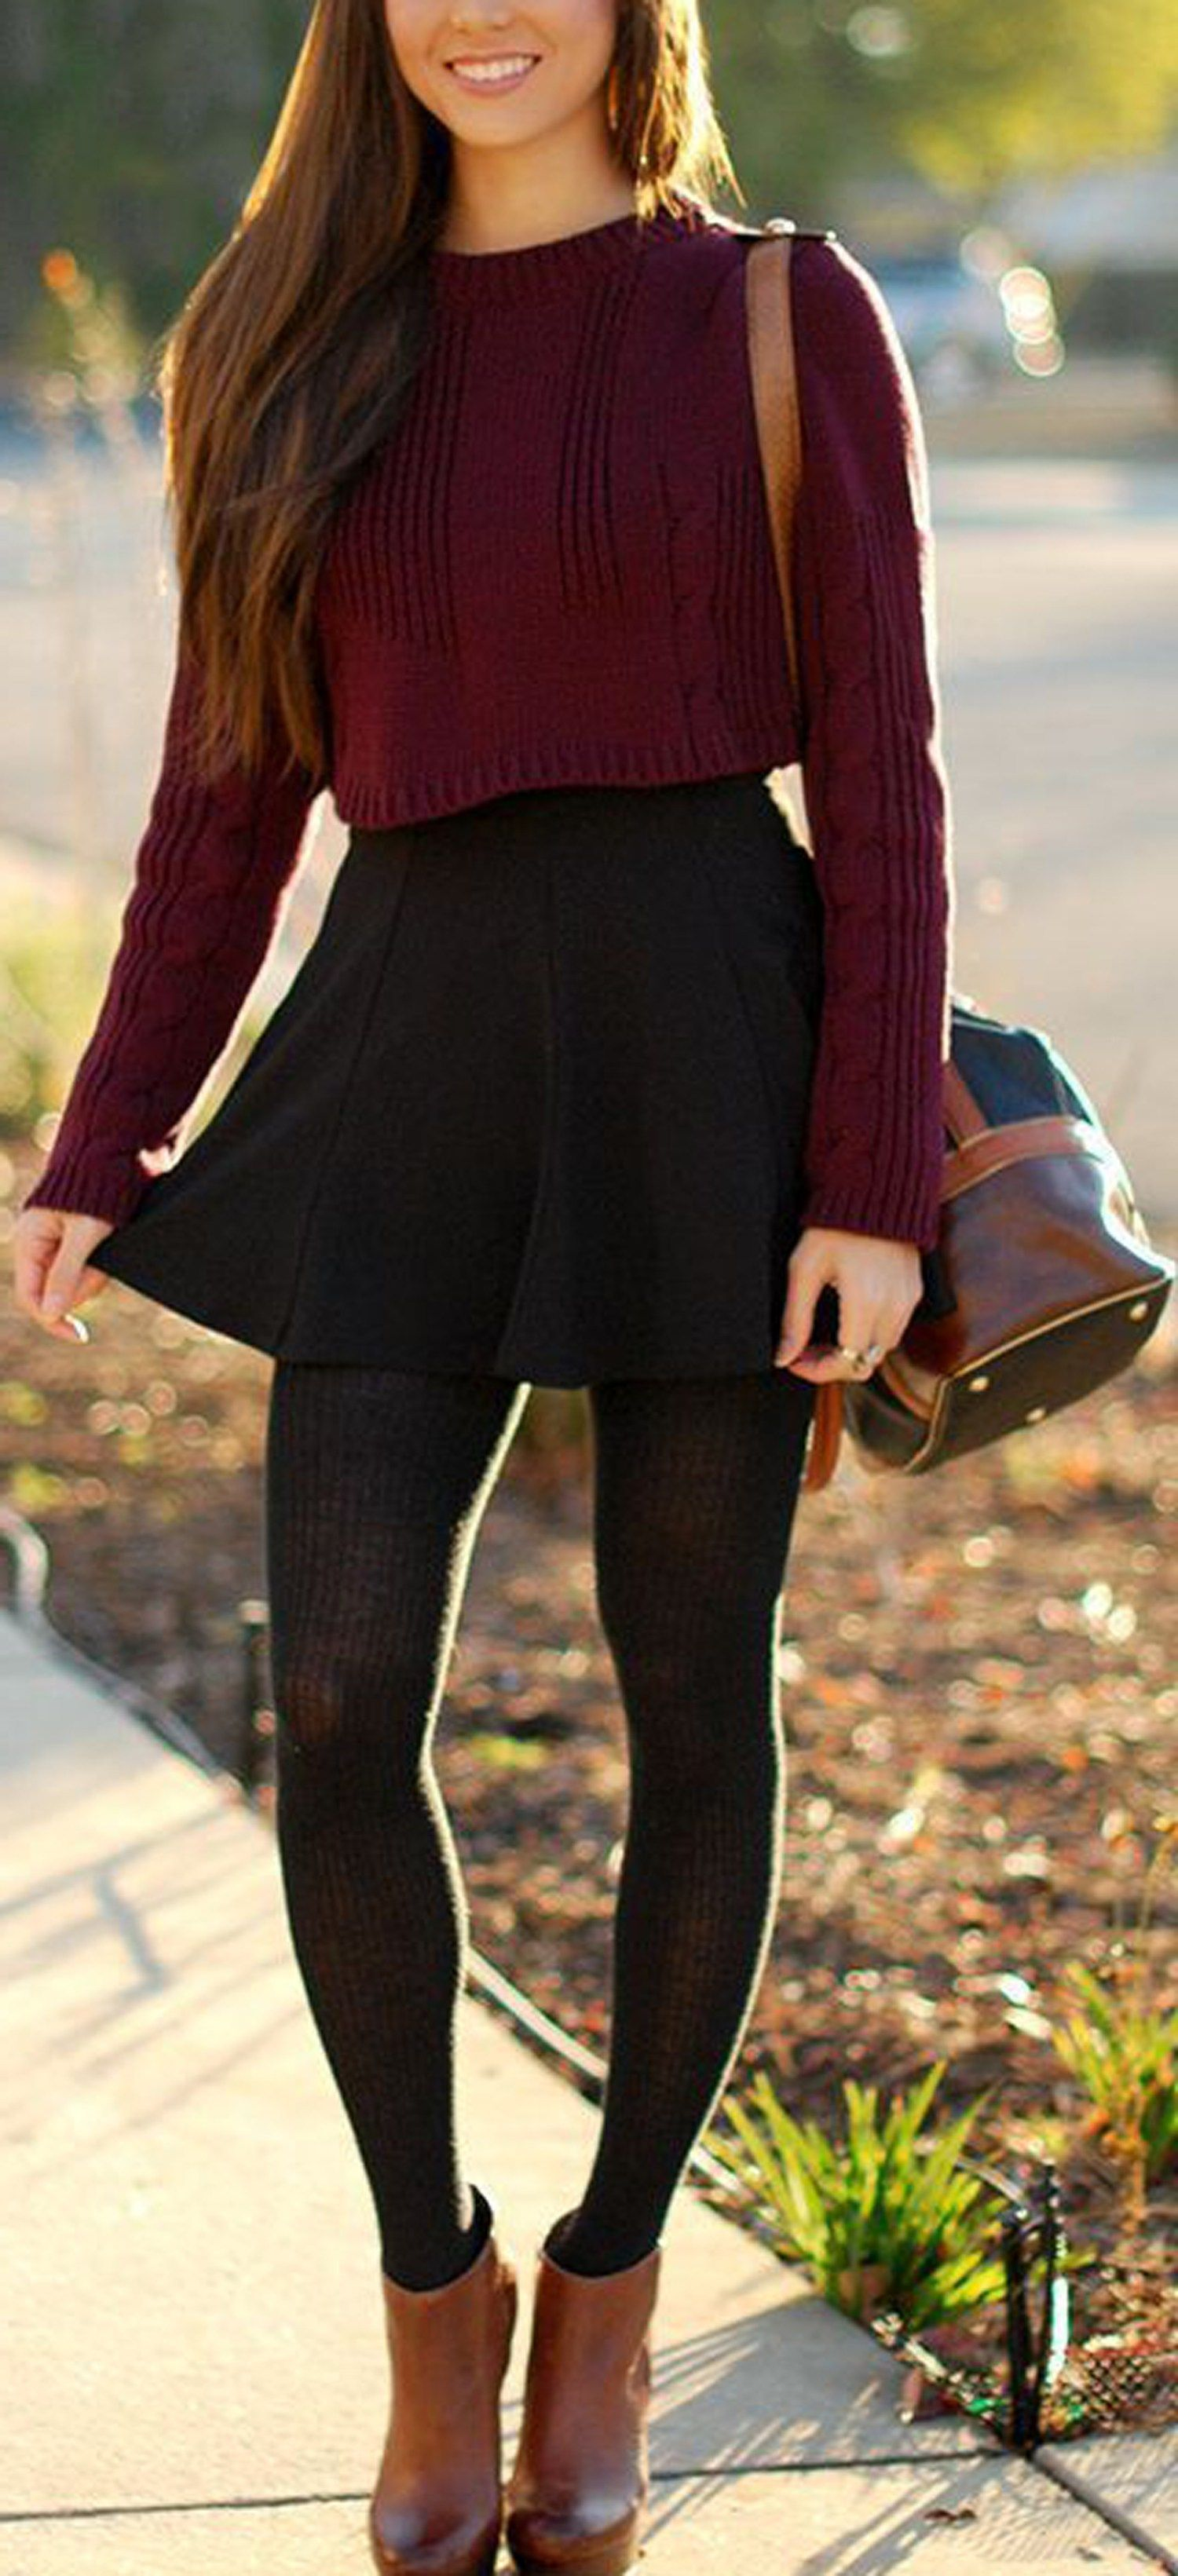 Classy winter outfit ideas for teenagers for teen girls crop top